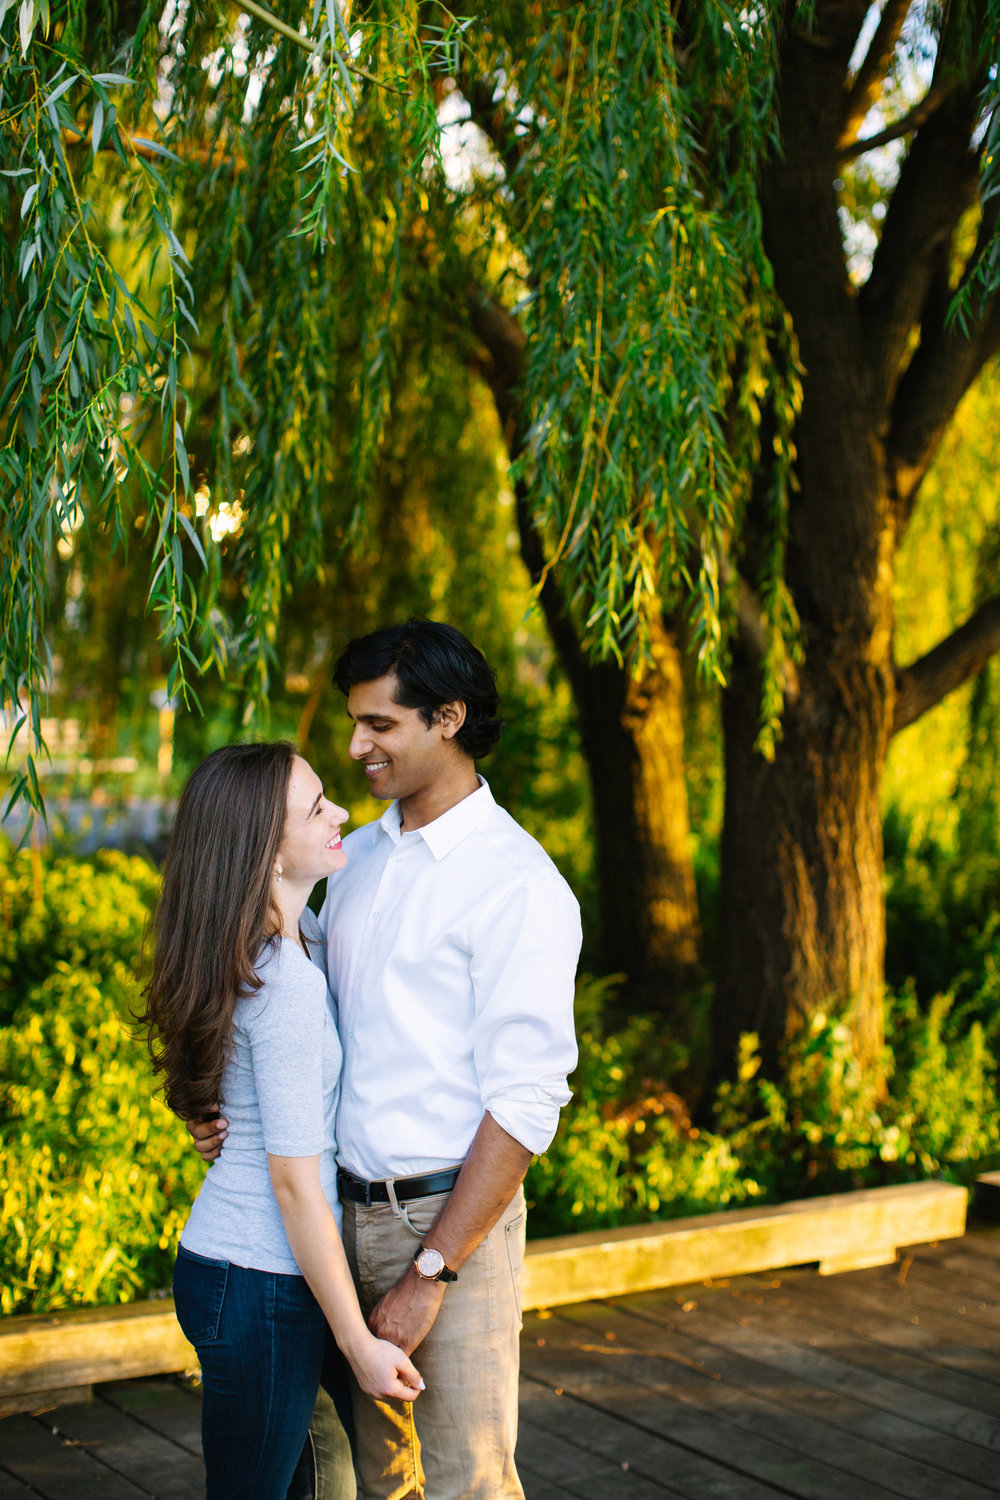 central_park_engagement_session_photos_11.jpg